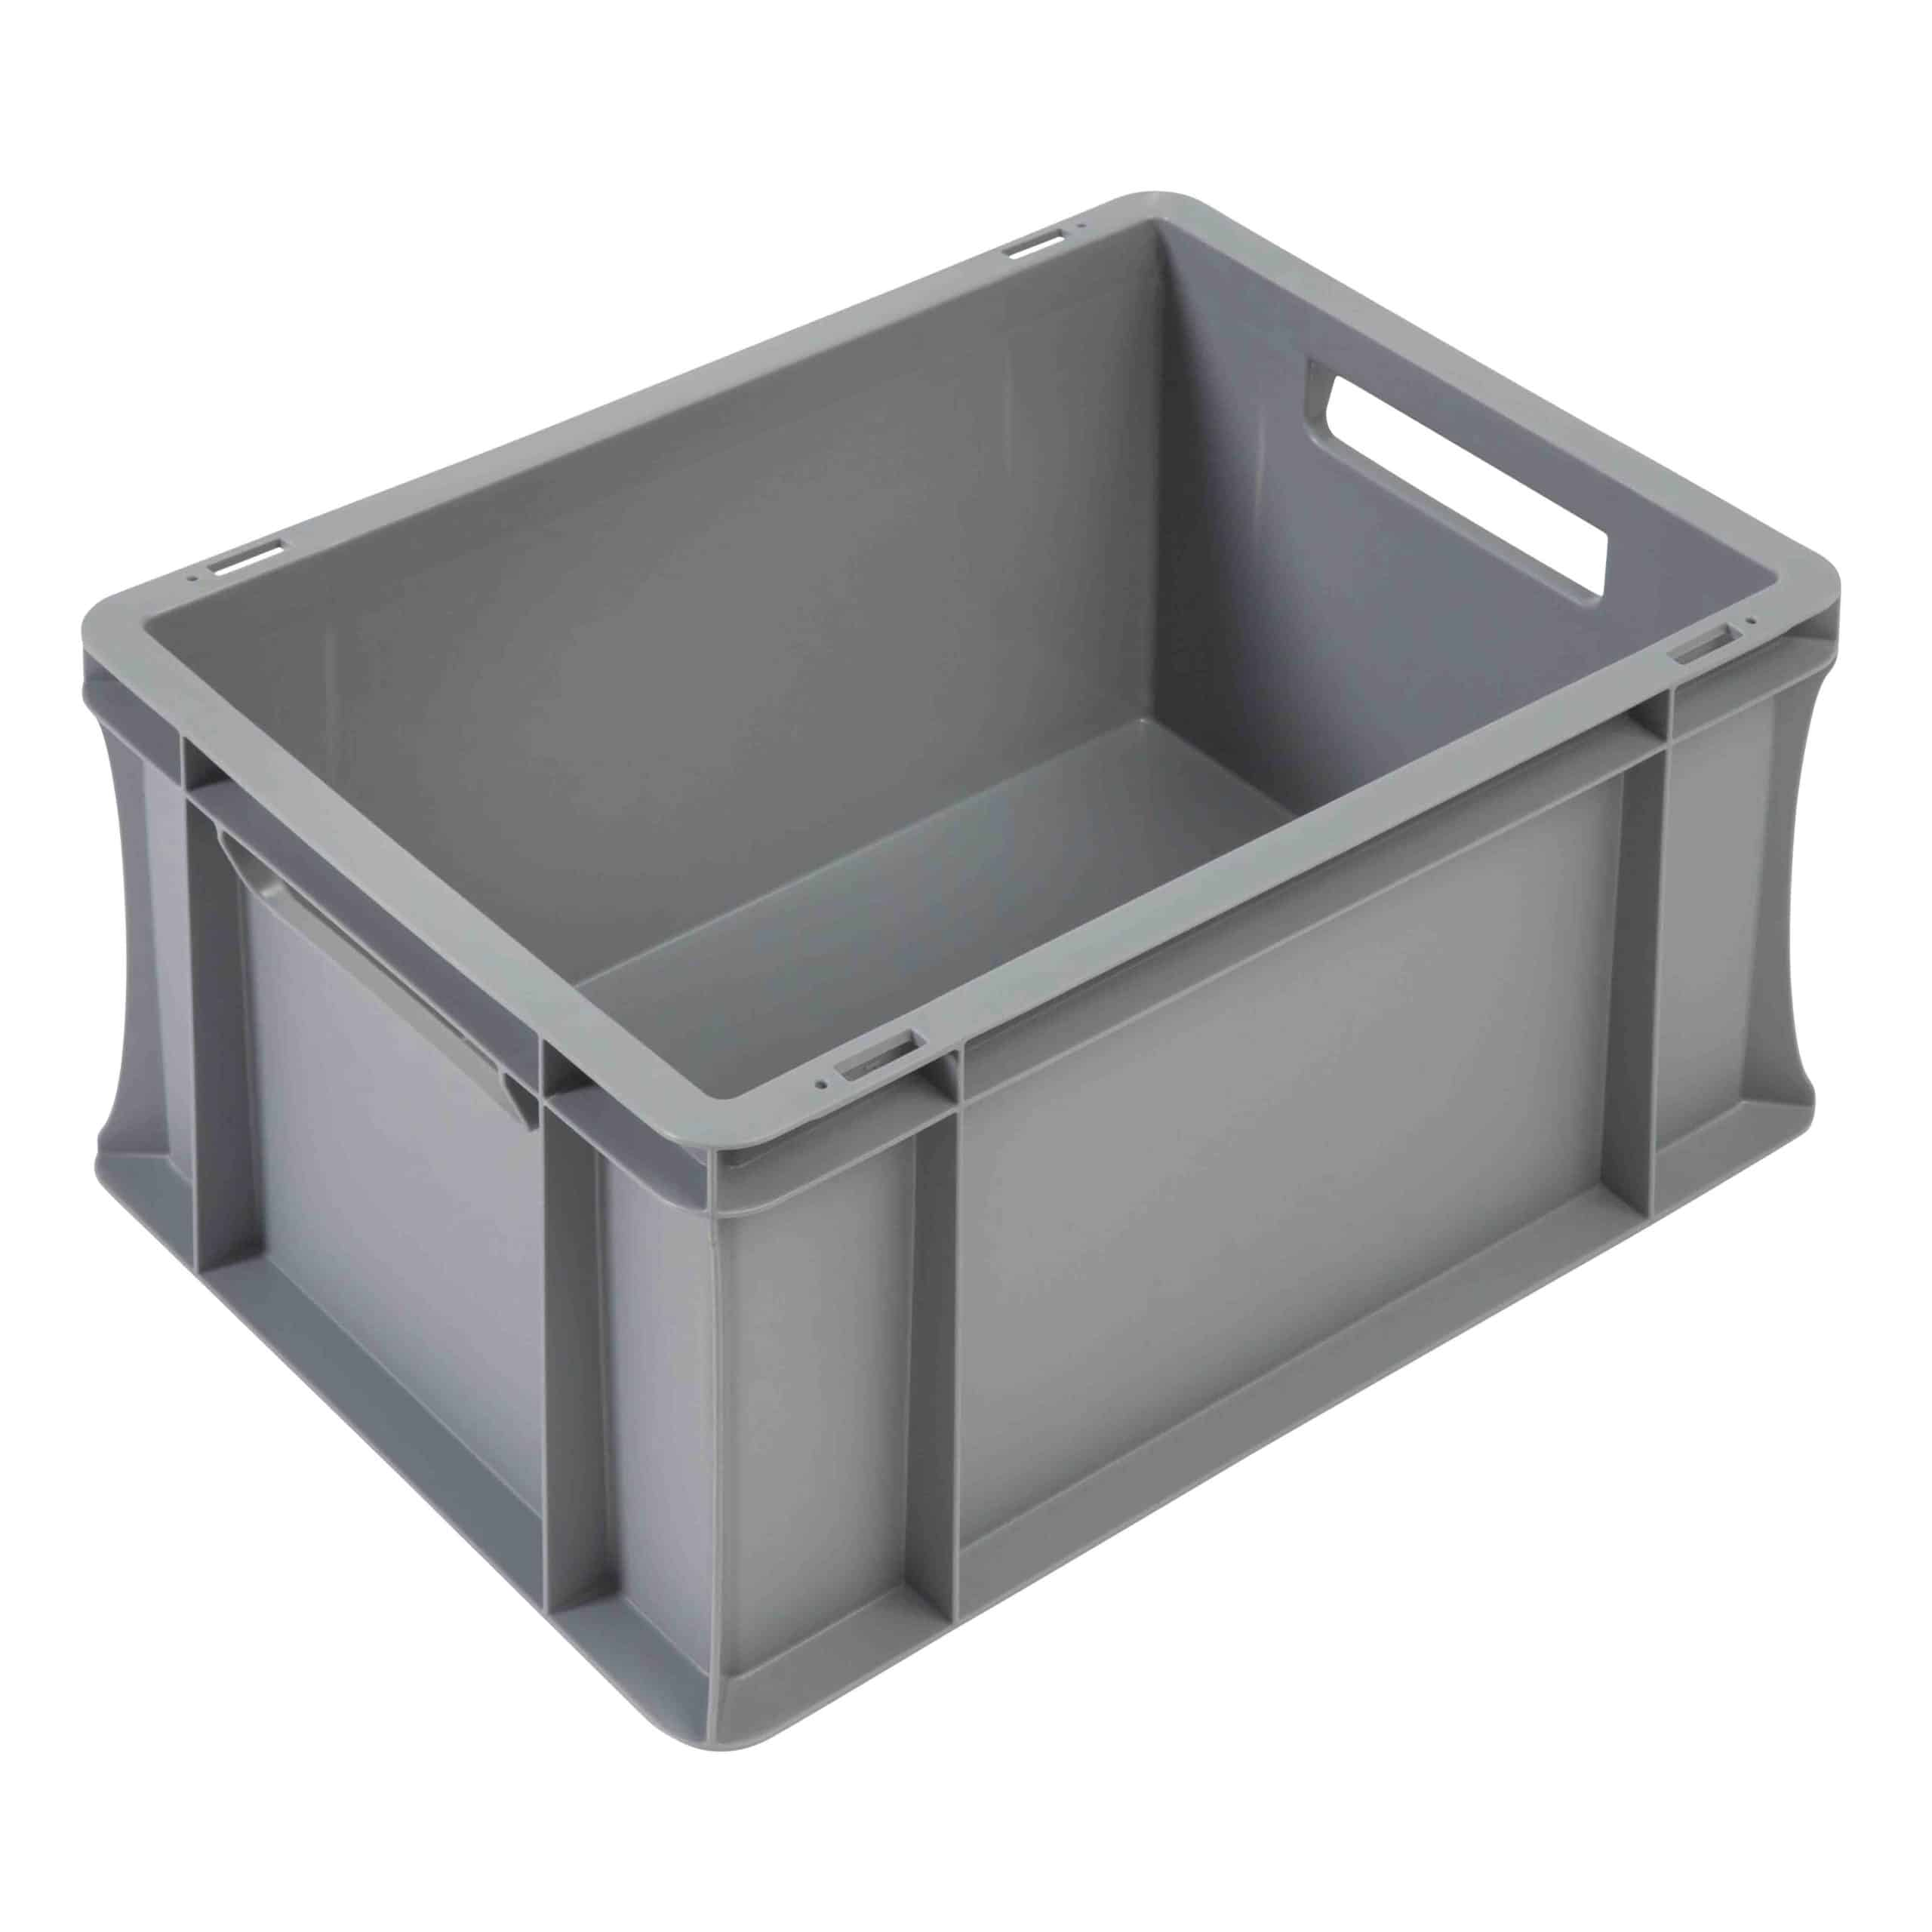 20 Litre Euro Containers